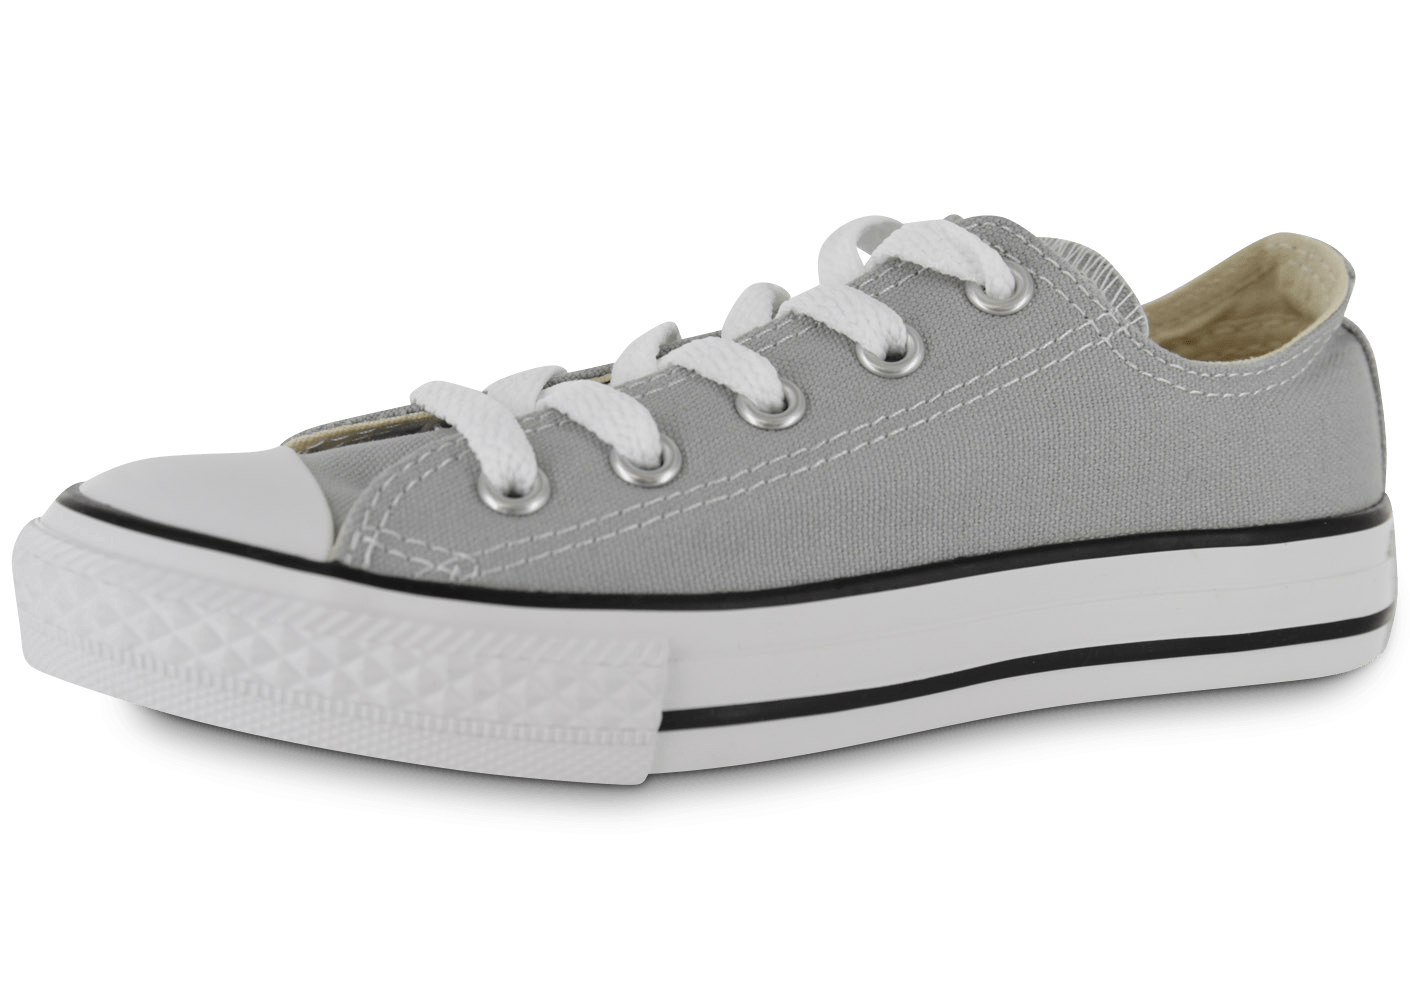 converse chuck taylor all star enfant grise chaussures chaussures chausport. Black Bedroom Furniture Sets. Home Design Ideas